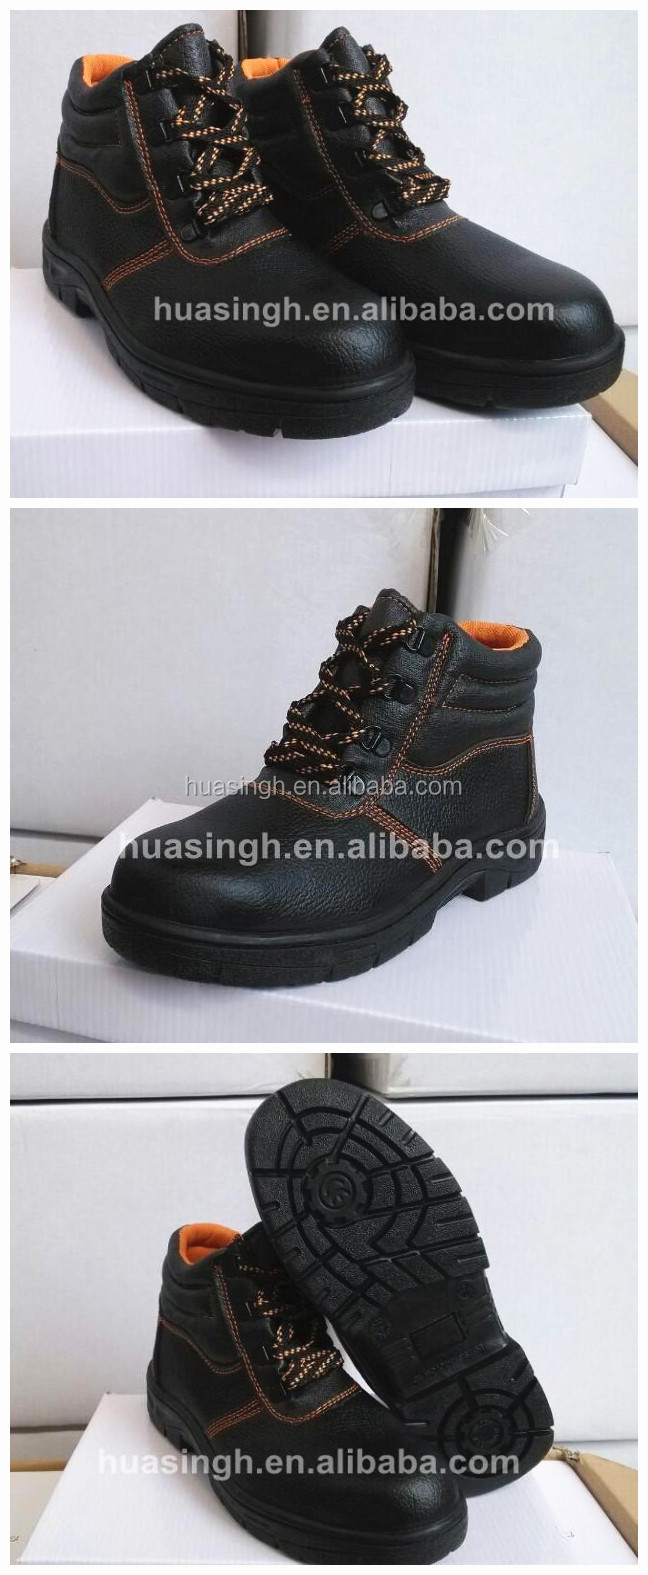 heavy construction earthworks anti-hit labor safety shoes with steel toe cap